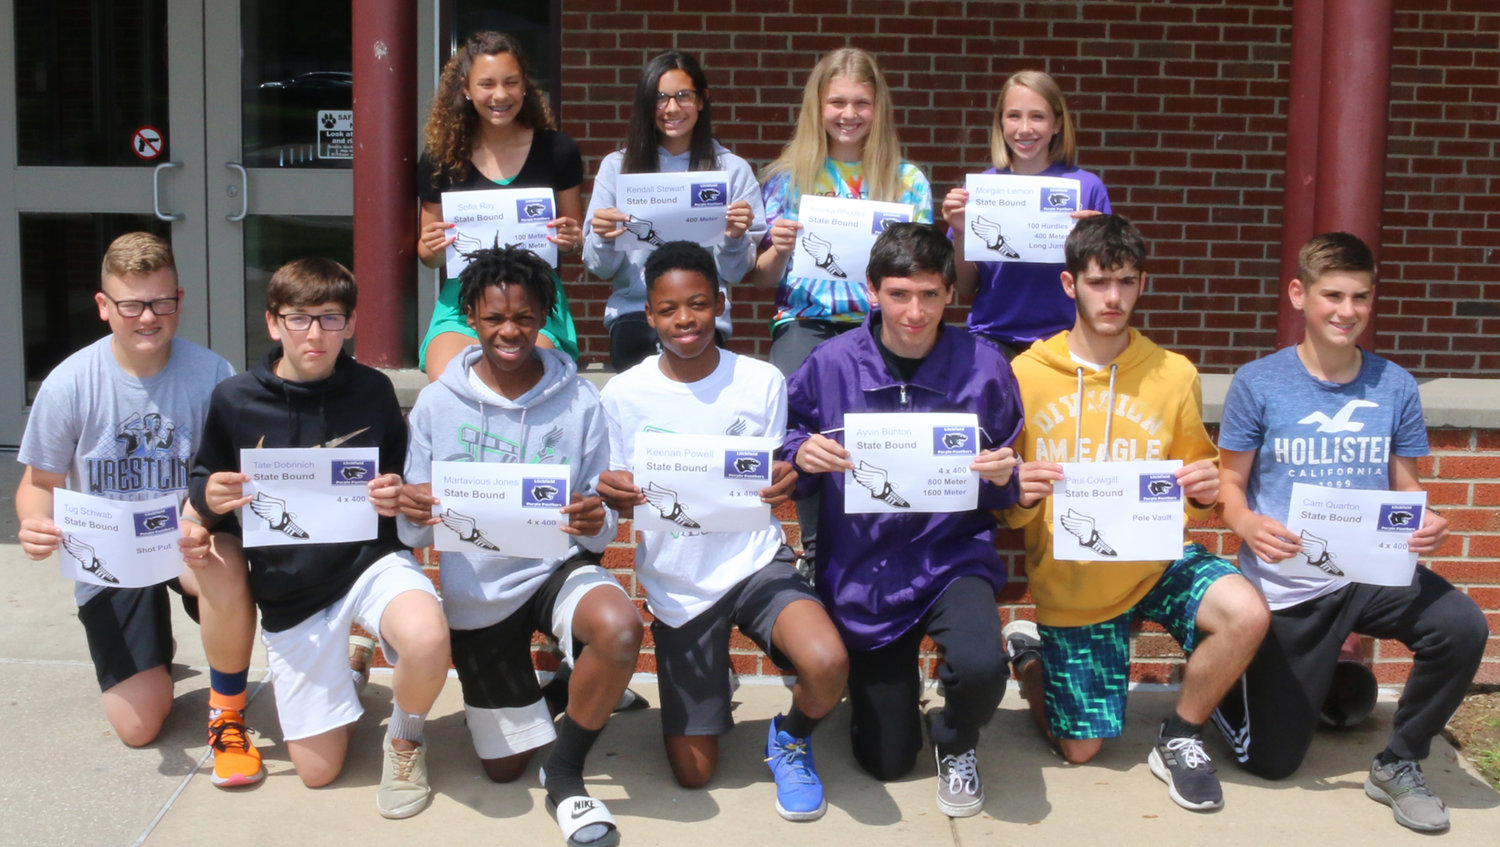 Eleven members of the Litchfield Middle School track team will be making the trip to the IESA Class AA State Finals on May 17-18 after qualifying for this year's event at the sectional in Edwardsville on May 13. State qualifiers, in front, from the left, are Tug Schwab, Tate Dobrinich, Martavious Jones, Kennan Powell, Ayvin Bunton, Paul Cowgill and Cam Quarton. In the back are Sofia Ray, Kendall Stewart, Annika Rhodes and Morgan Lemon.